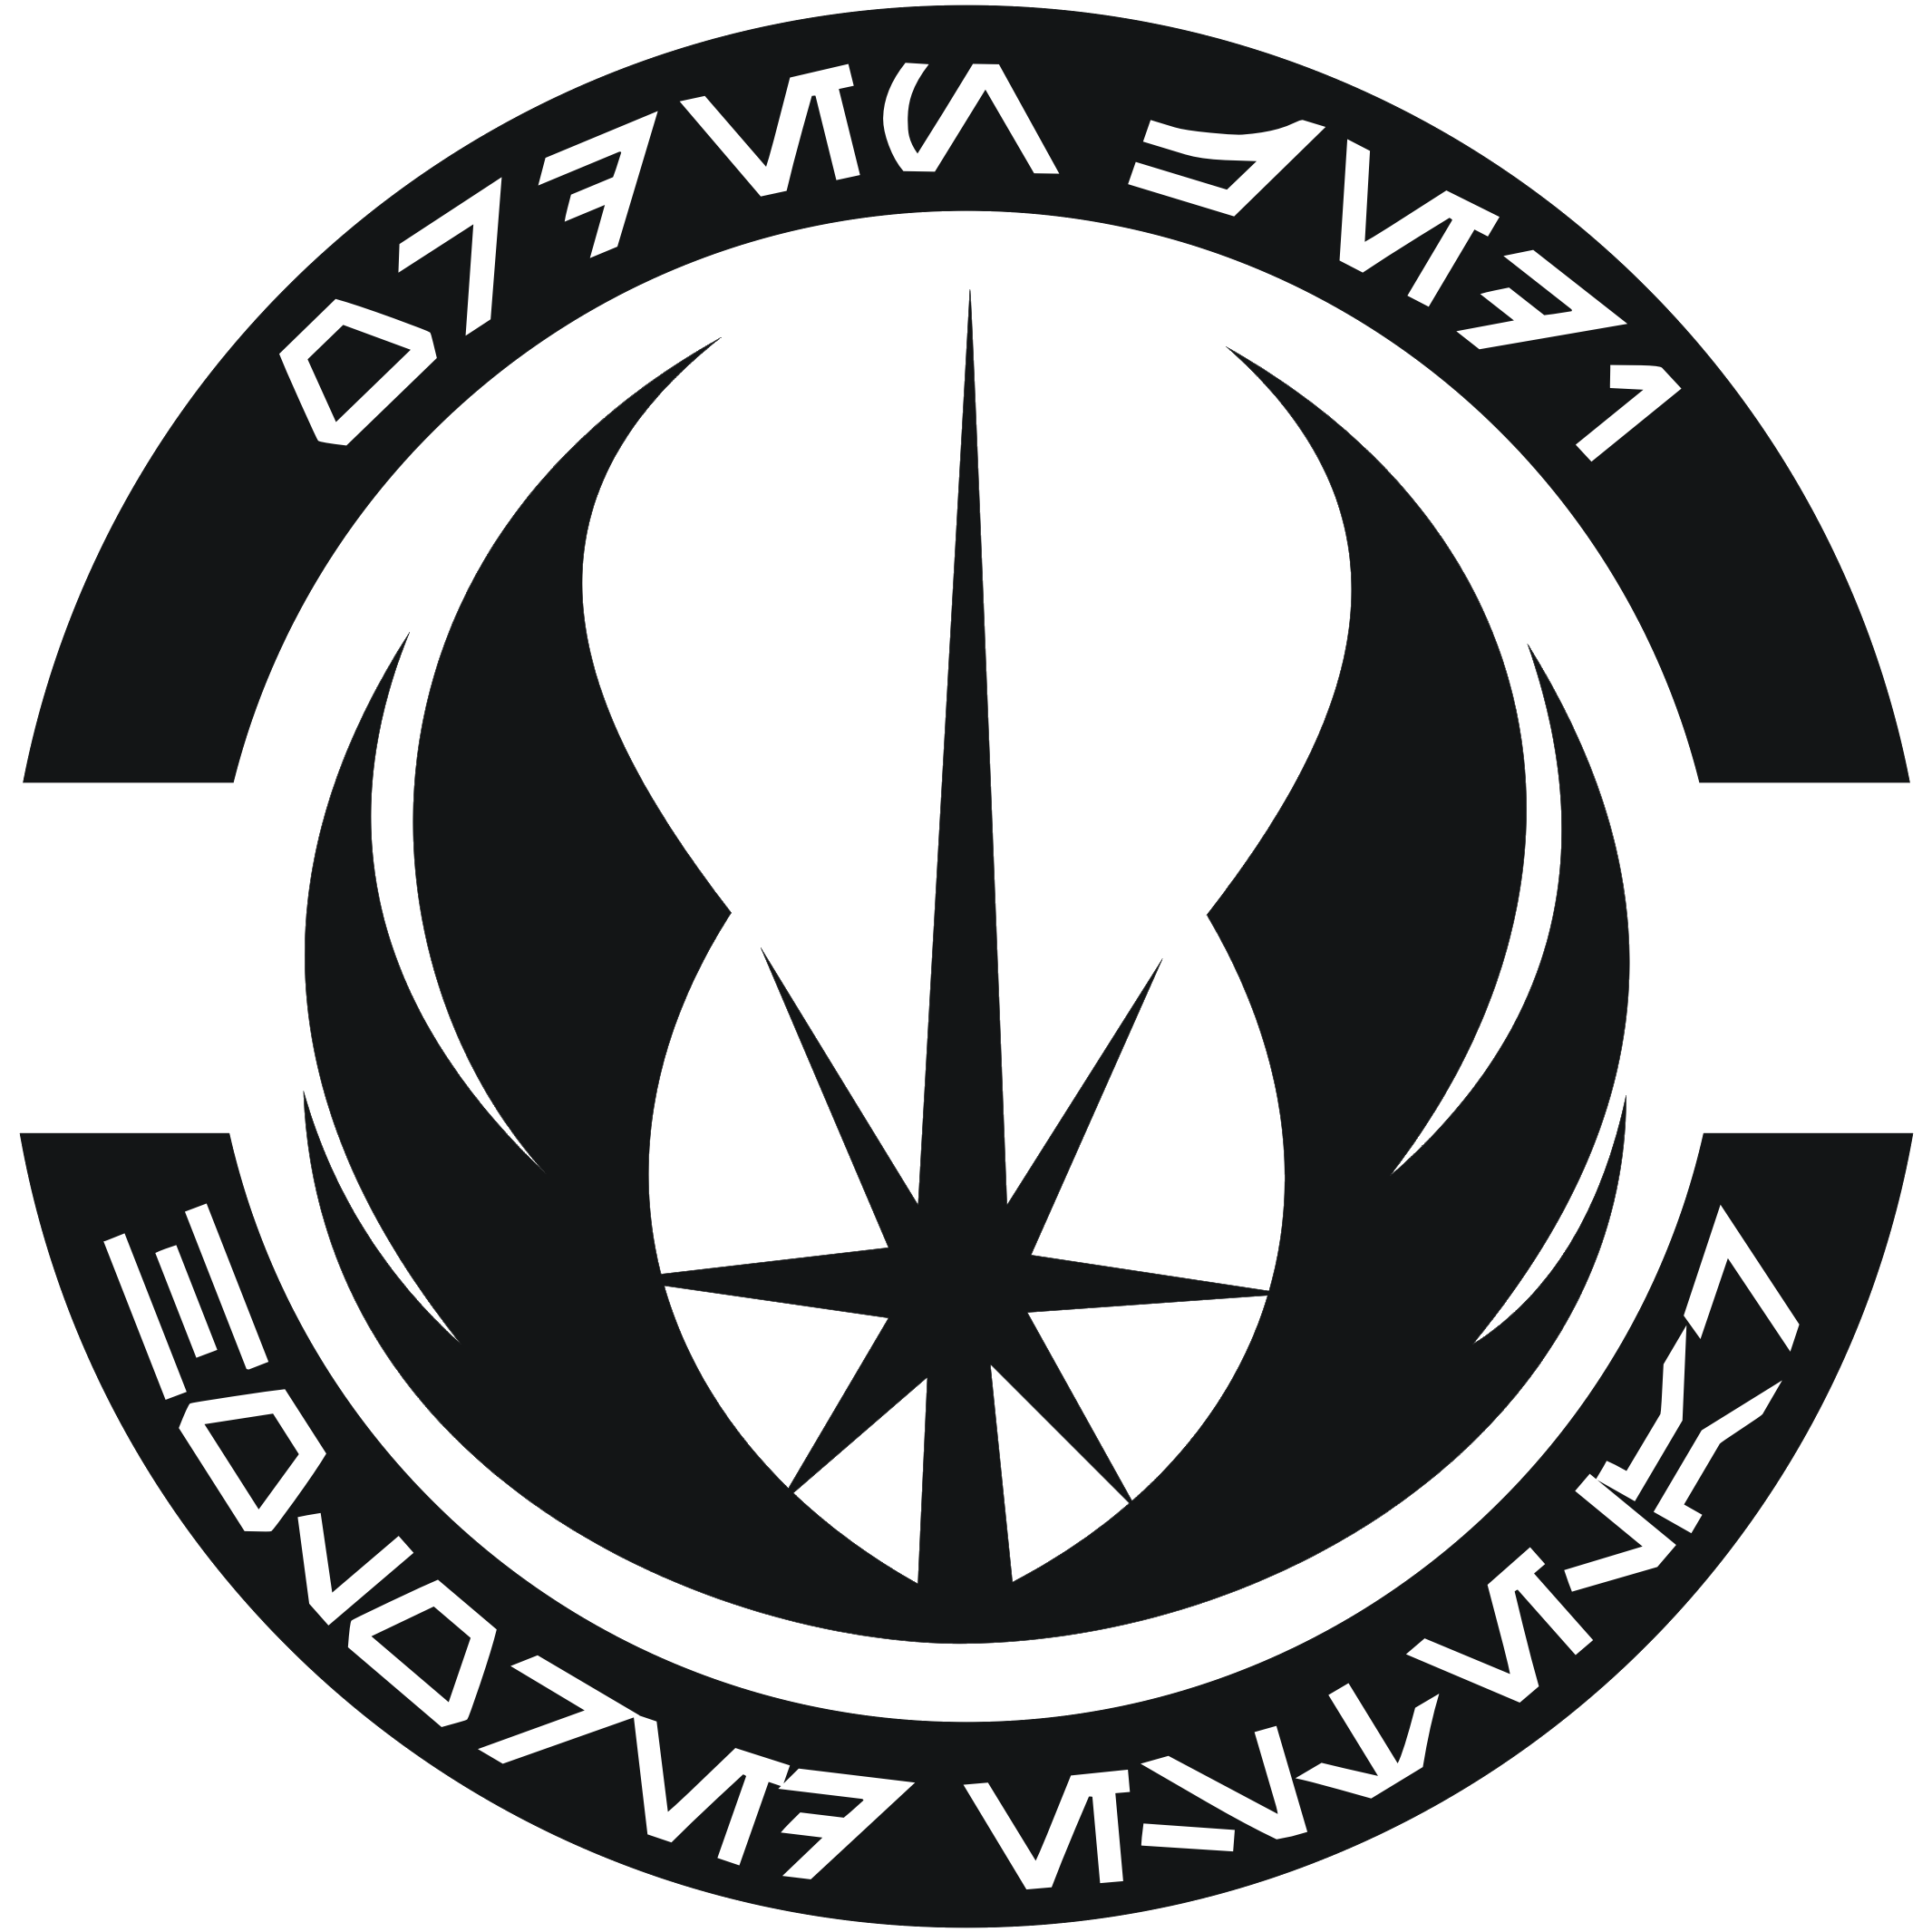 Star wars characters clipart black and white clipart black and white stock Star Wars Jedi Symbol   Why you might want to become a Jedi Knight ... clipart black and white stock